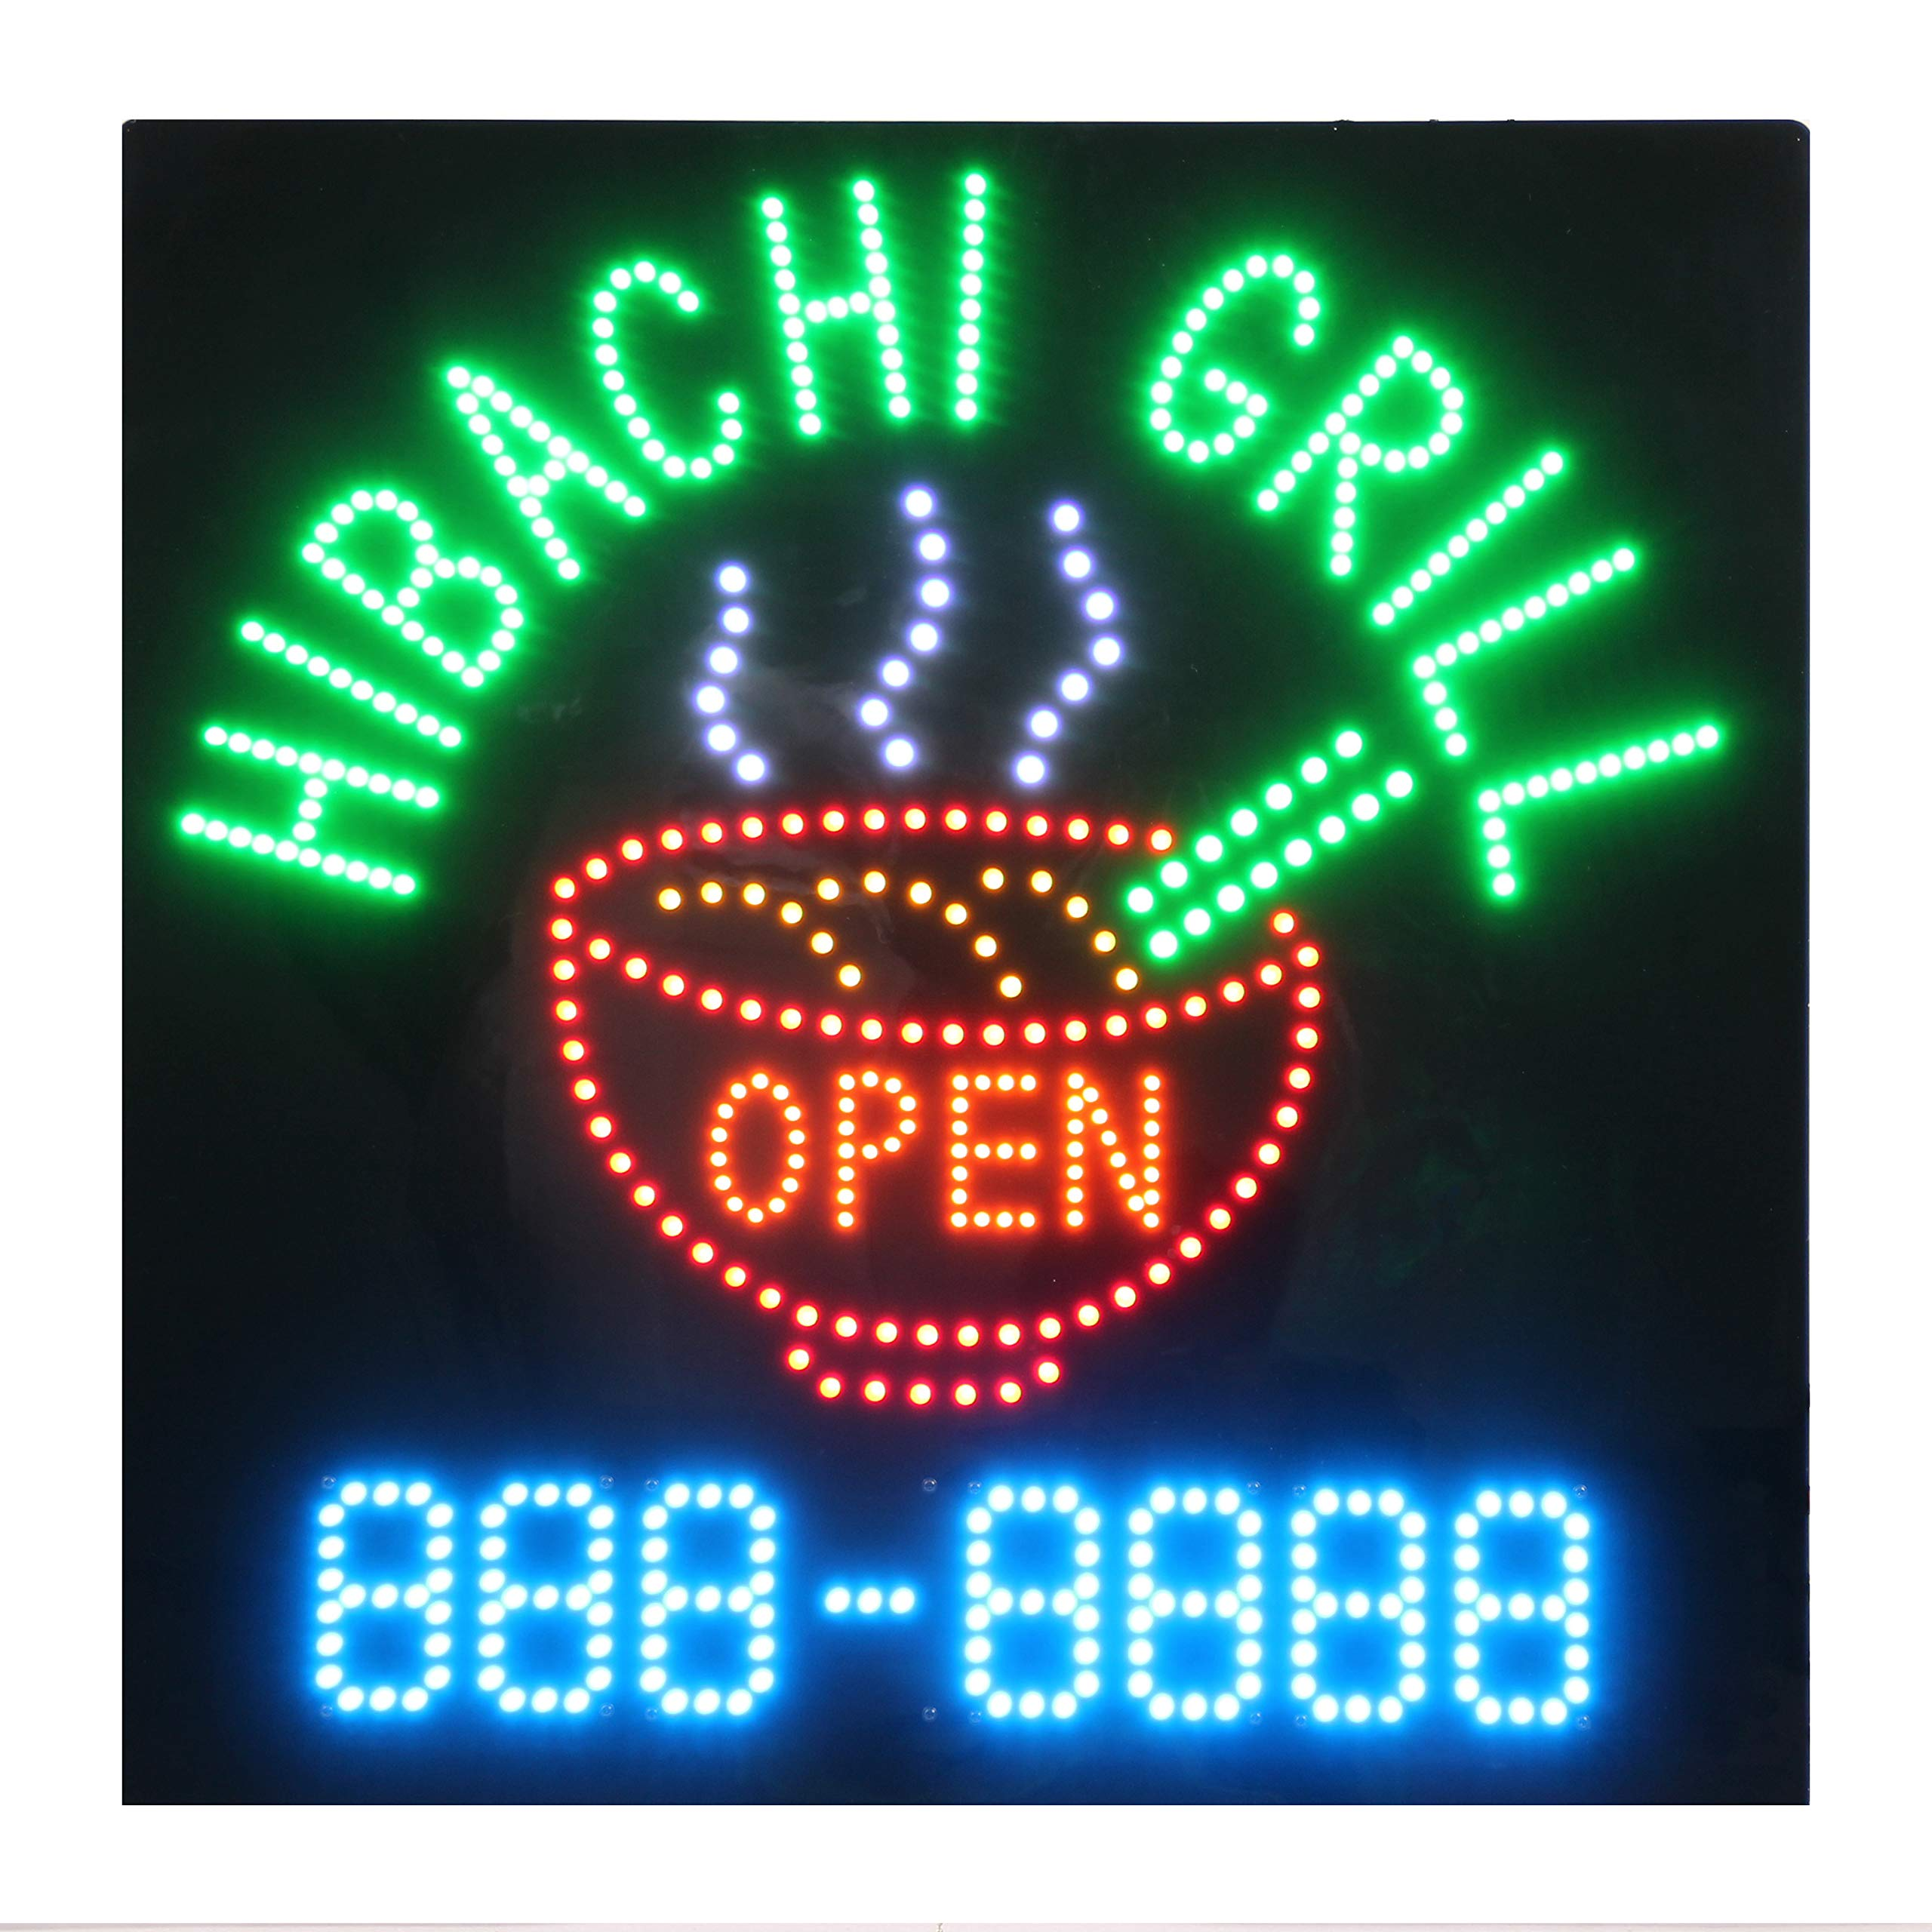 LED Hibachi Grill Open Light Sign by HIDLY